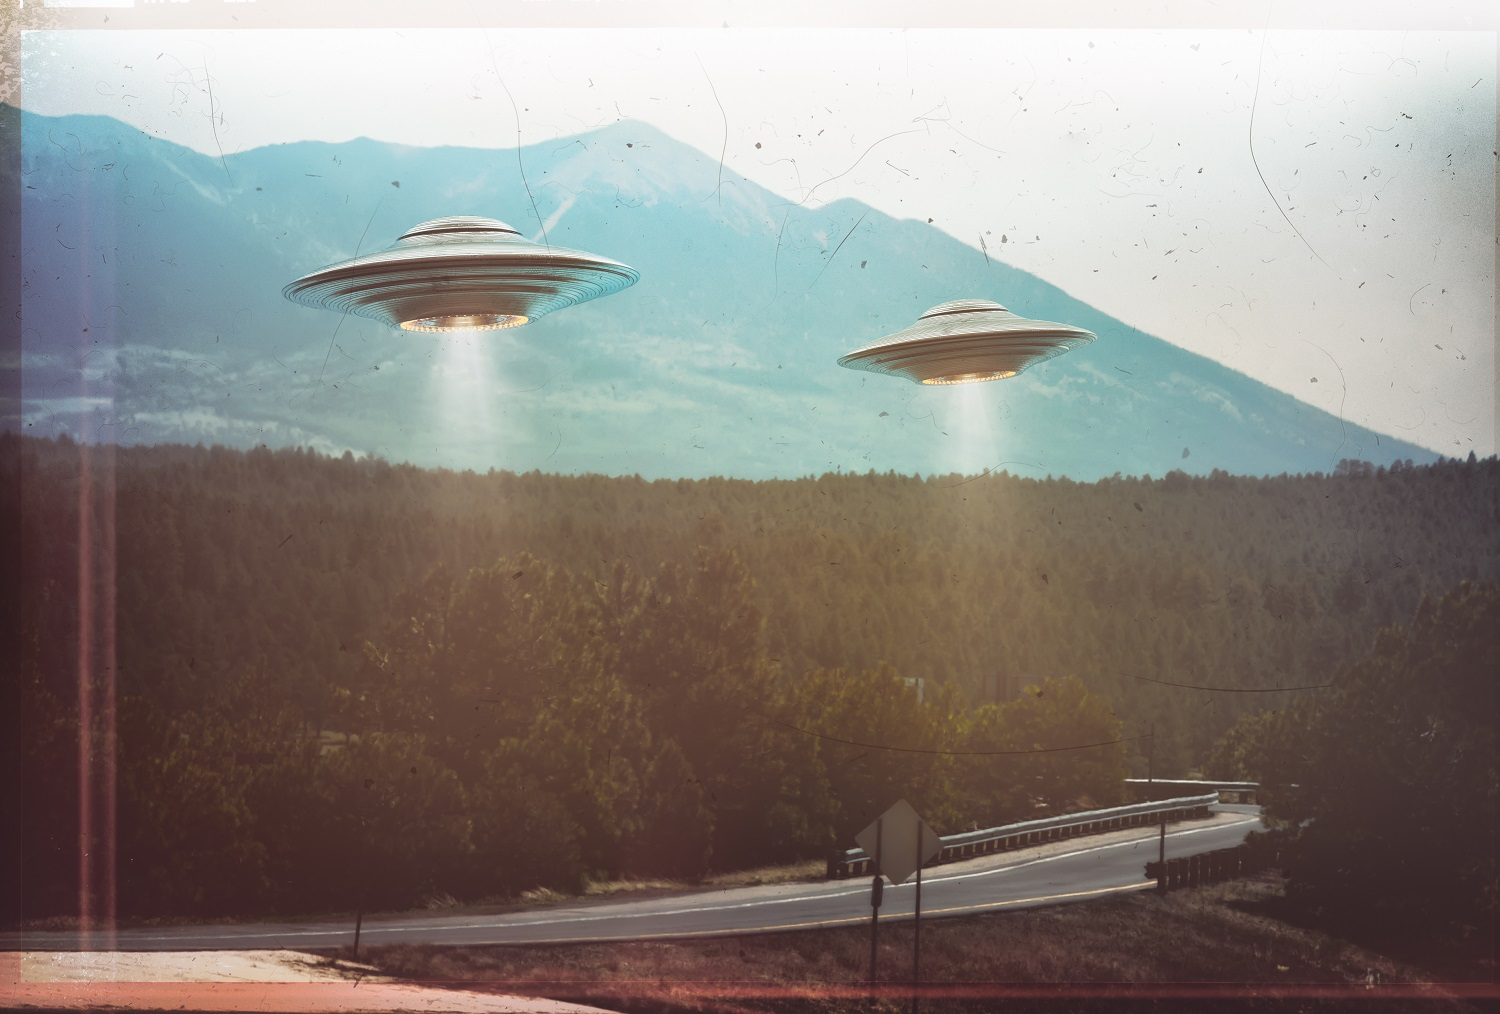 Two UFOs flying in the sky. Shutterstock.